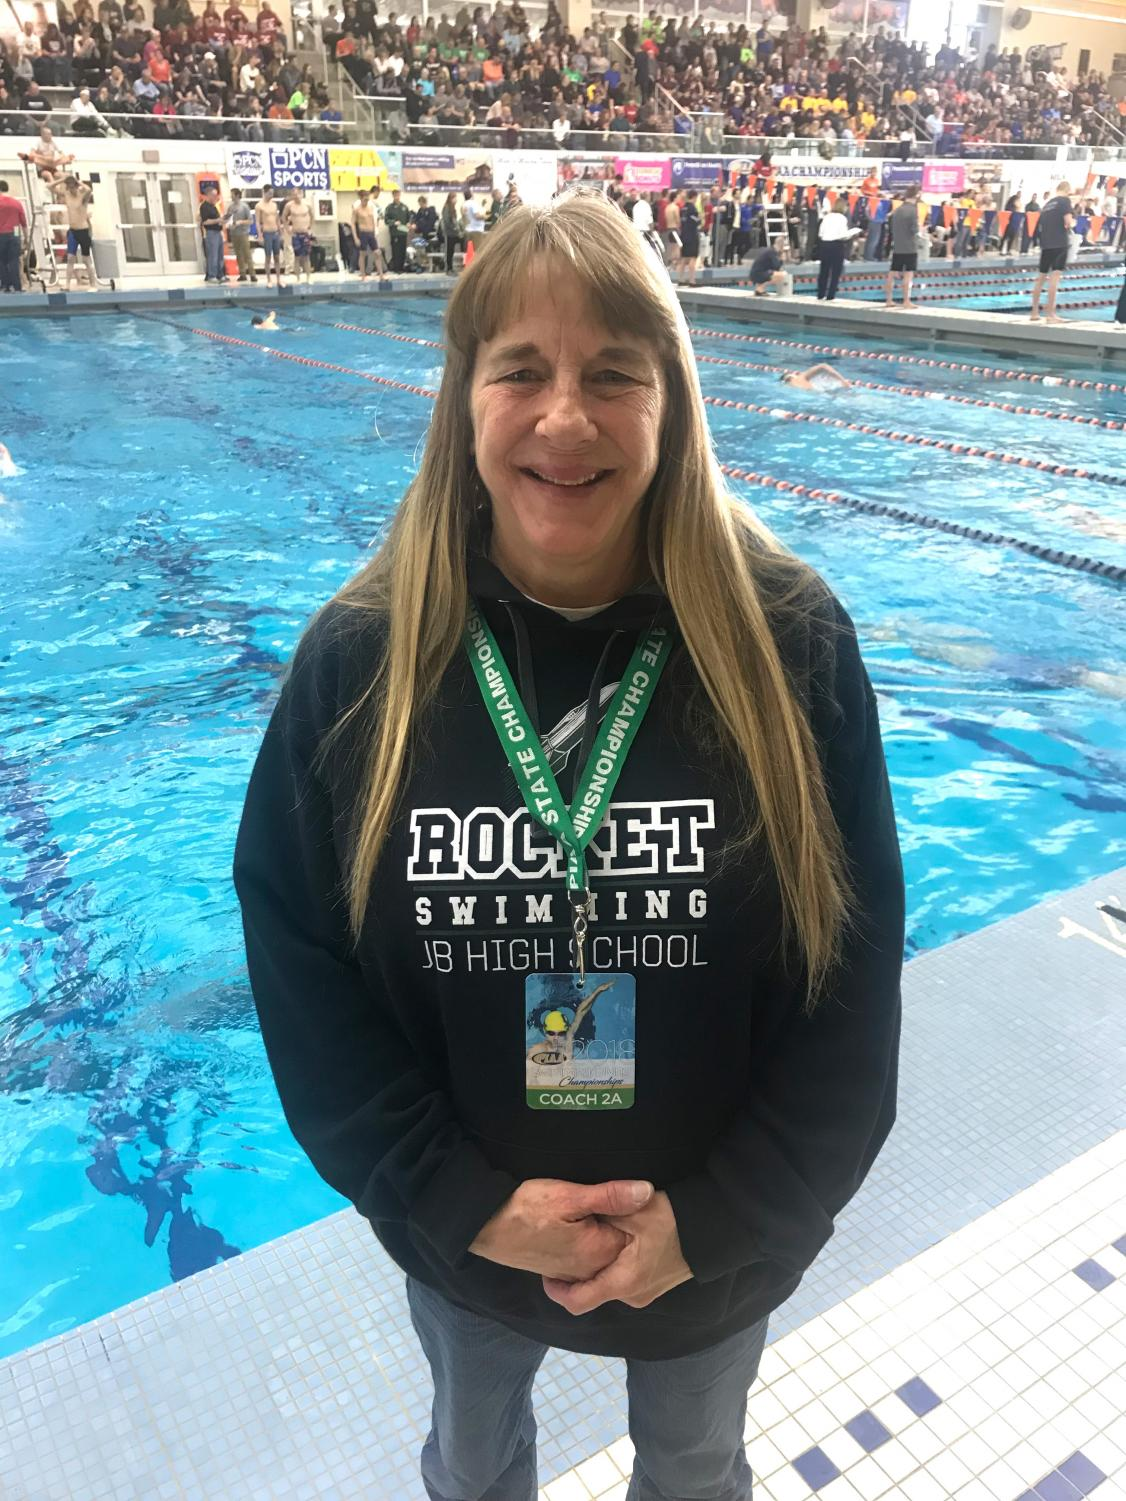 At a championship swim meet, Shellie Viertz is in charge of coaching several swimmers.